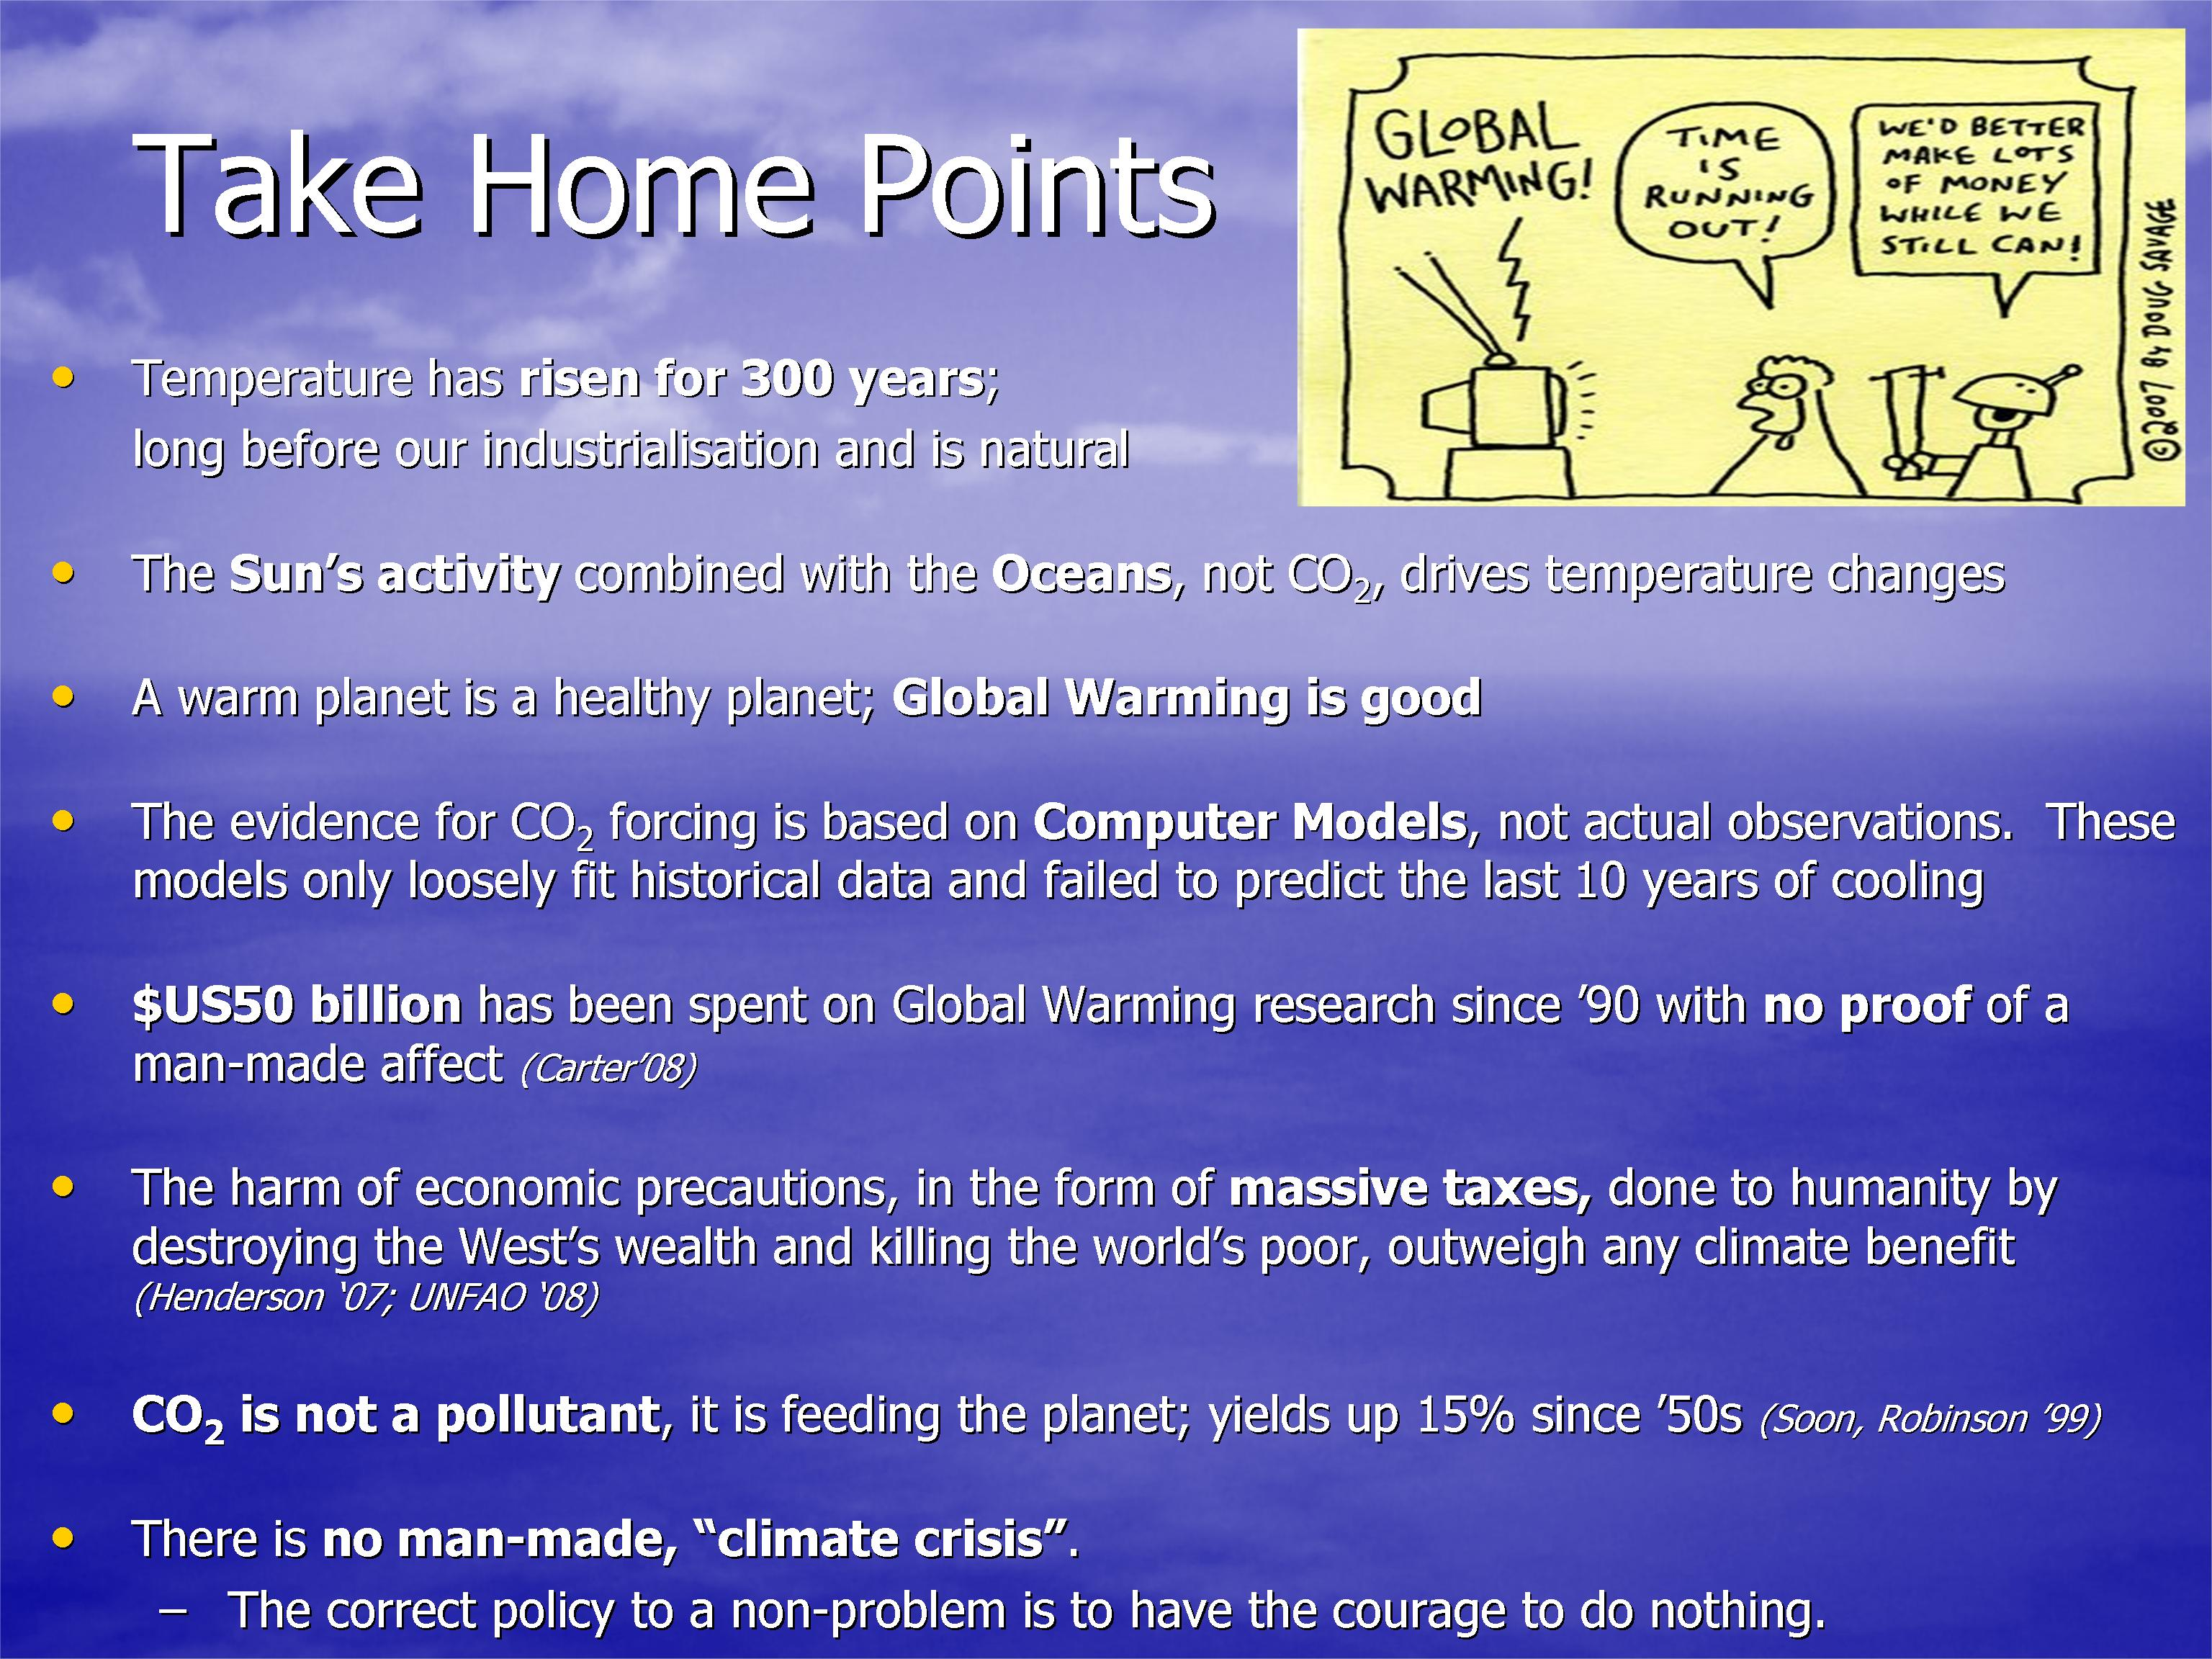 conclusion of global warming essay global warming is real essay on global warming